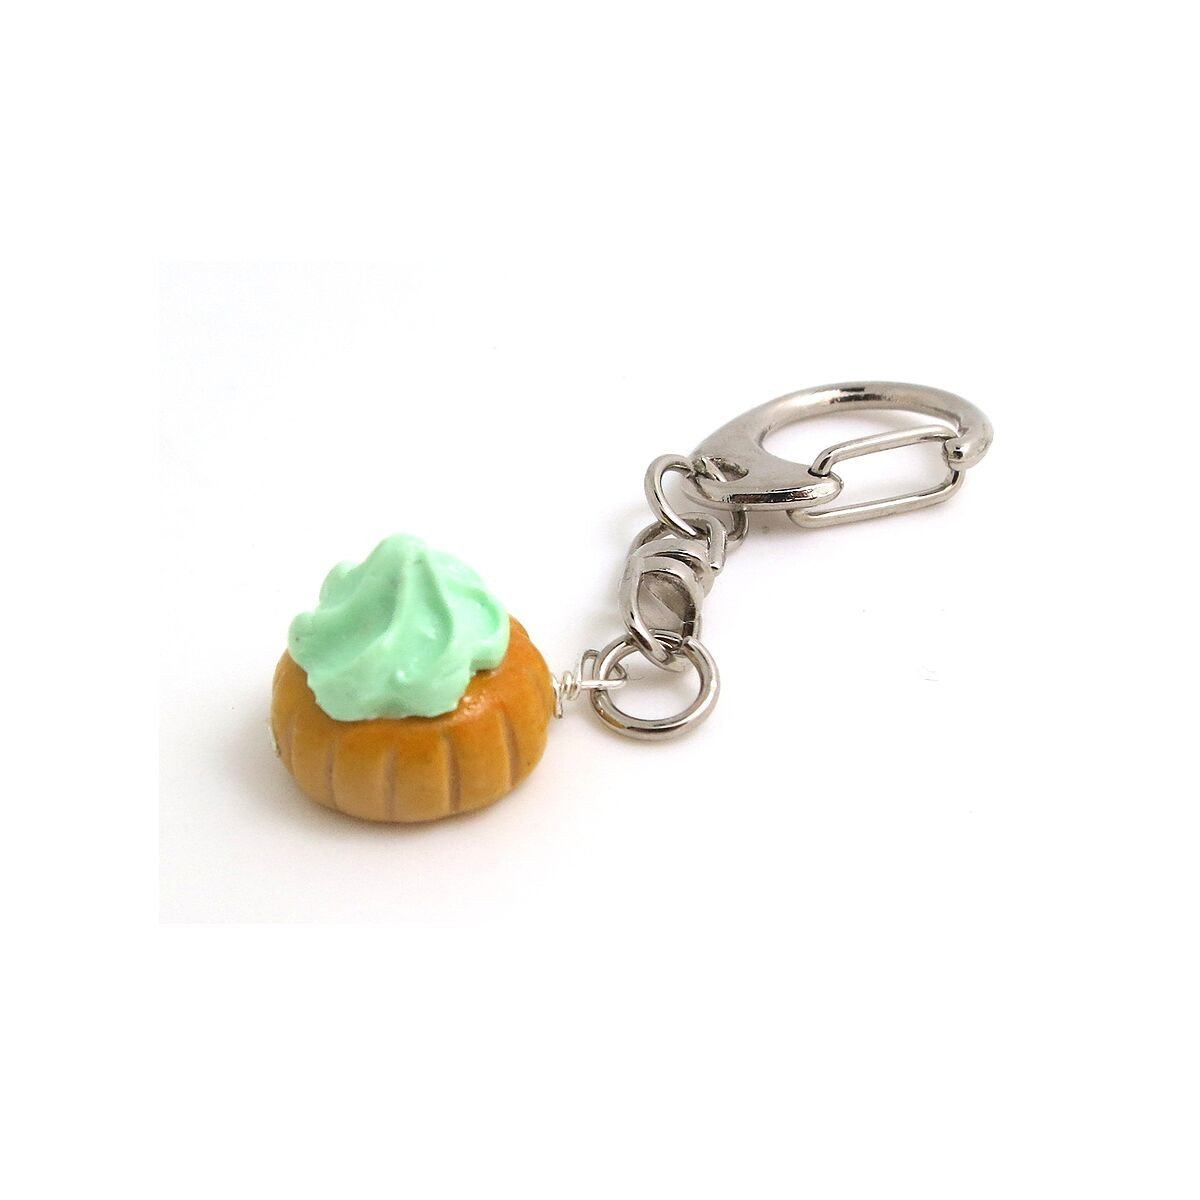 Giant Gem Keychains Local Keychains thepigbakesclay Mint